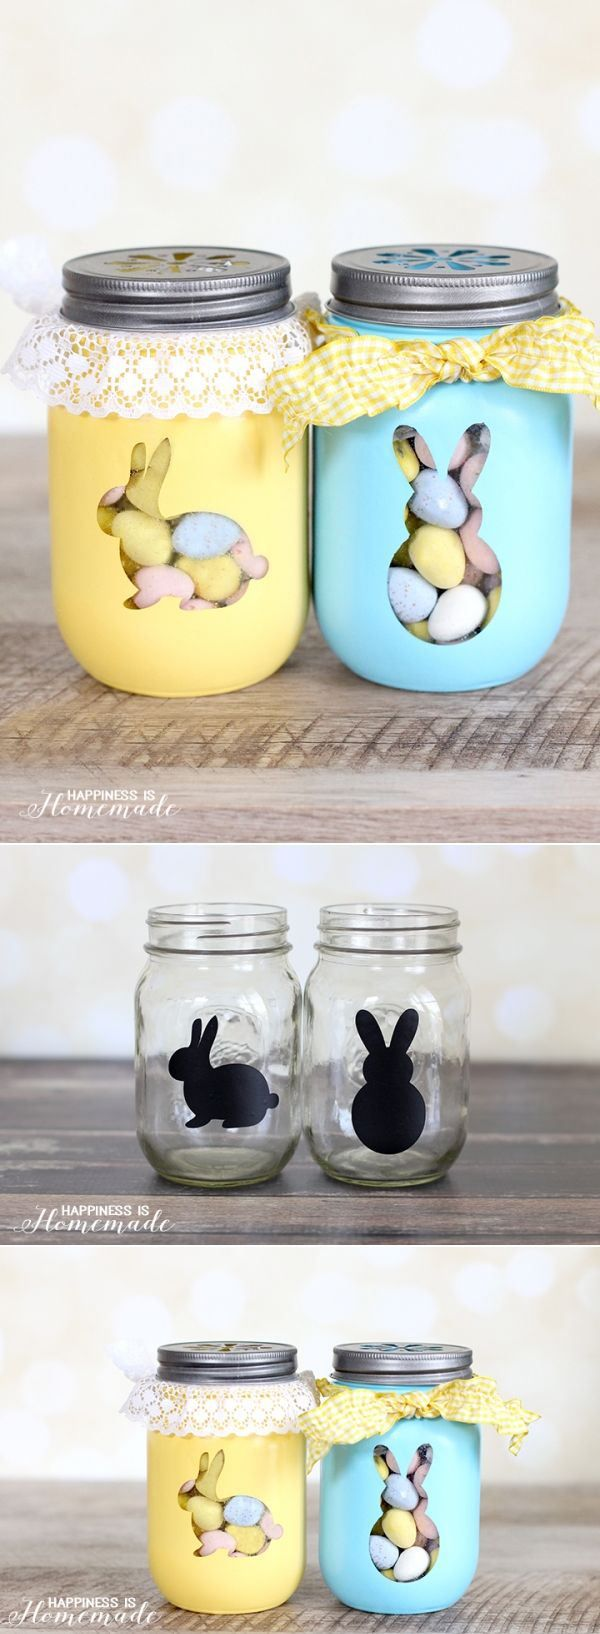 Easter Bunny treat jars - so cute!